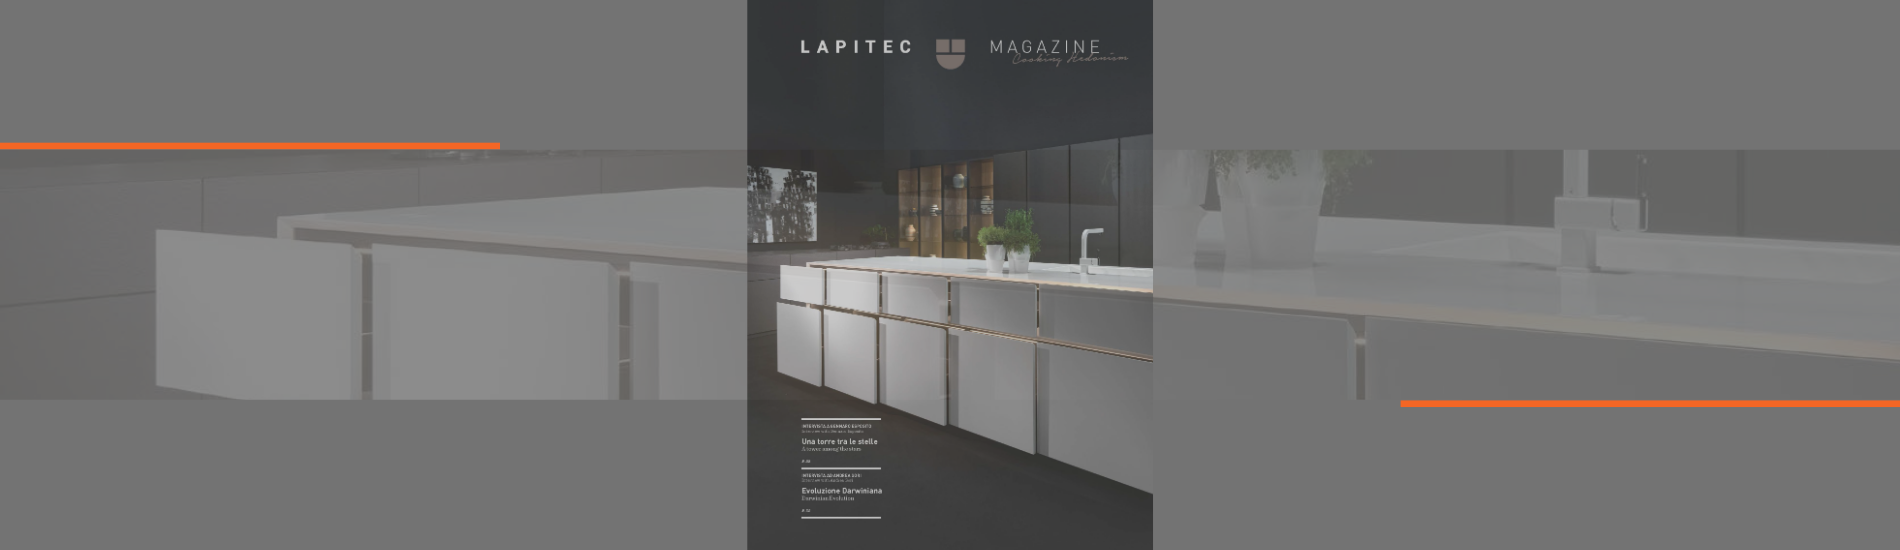 PUBLICATION: LAPITEC REFERENCE BOOK – KITCHEN EDITION 2020